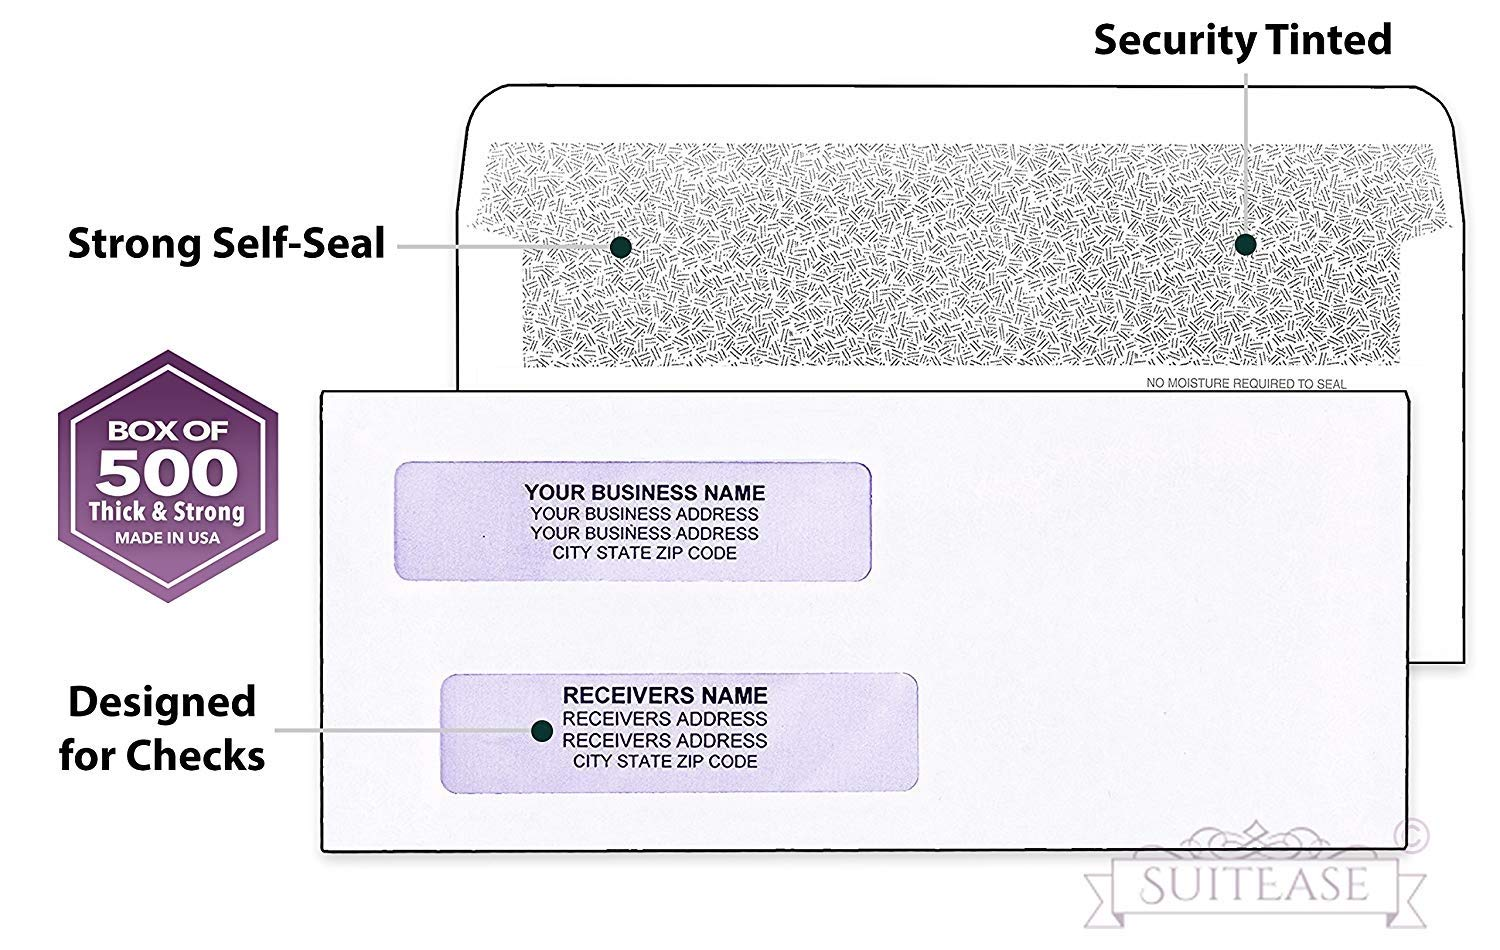 500#8 Flip and Seal Security Check Envelopes, Double Window for Addresses, Inner Security, Designed for Quick-Books Printed Checks, Perfect Fit Laser Checks - Number 8 Size 3 5/8 Inch x 8 11/16 Inch by SuitEase